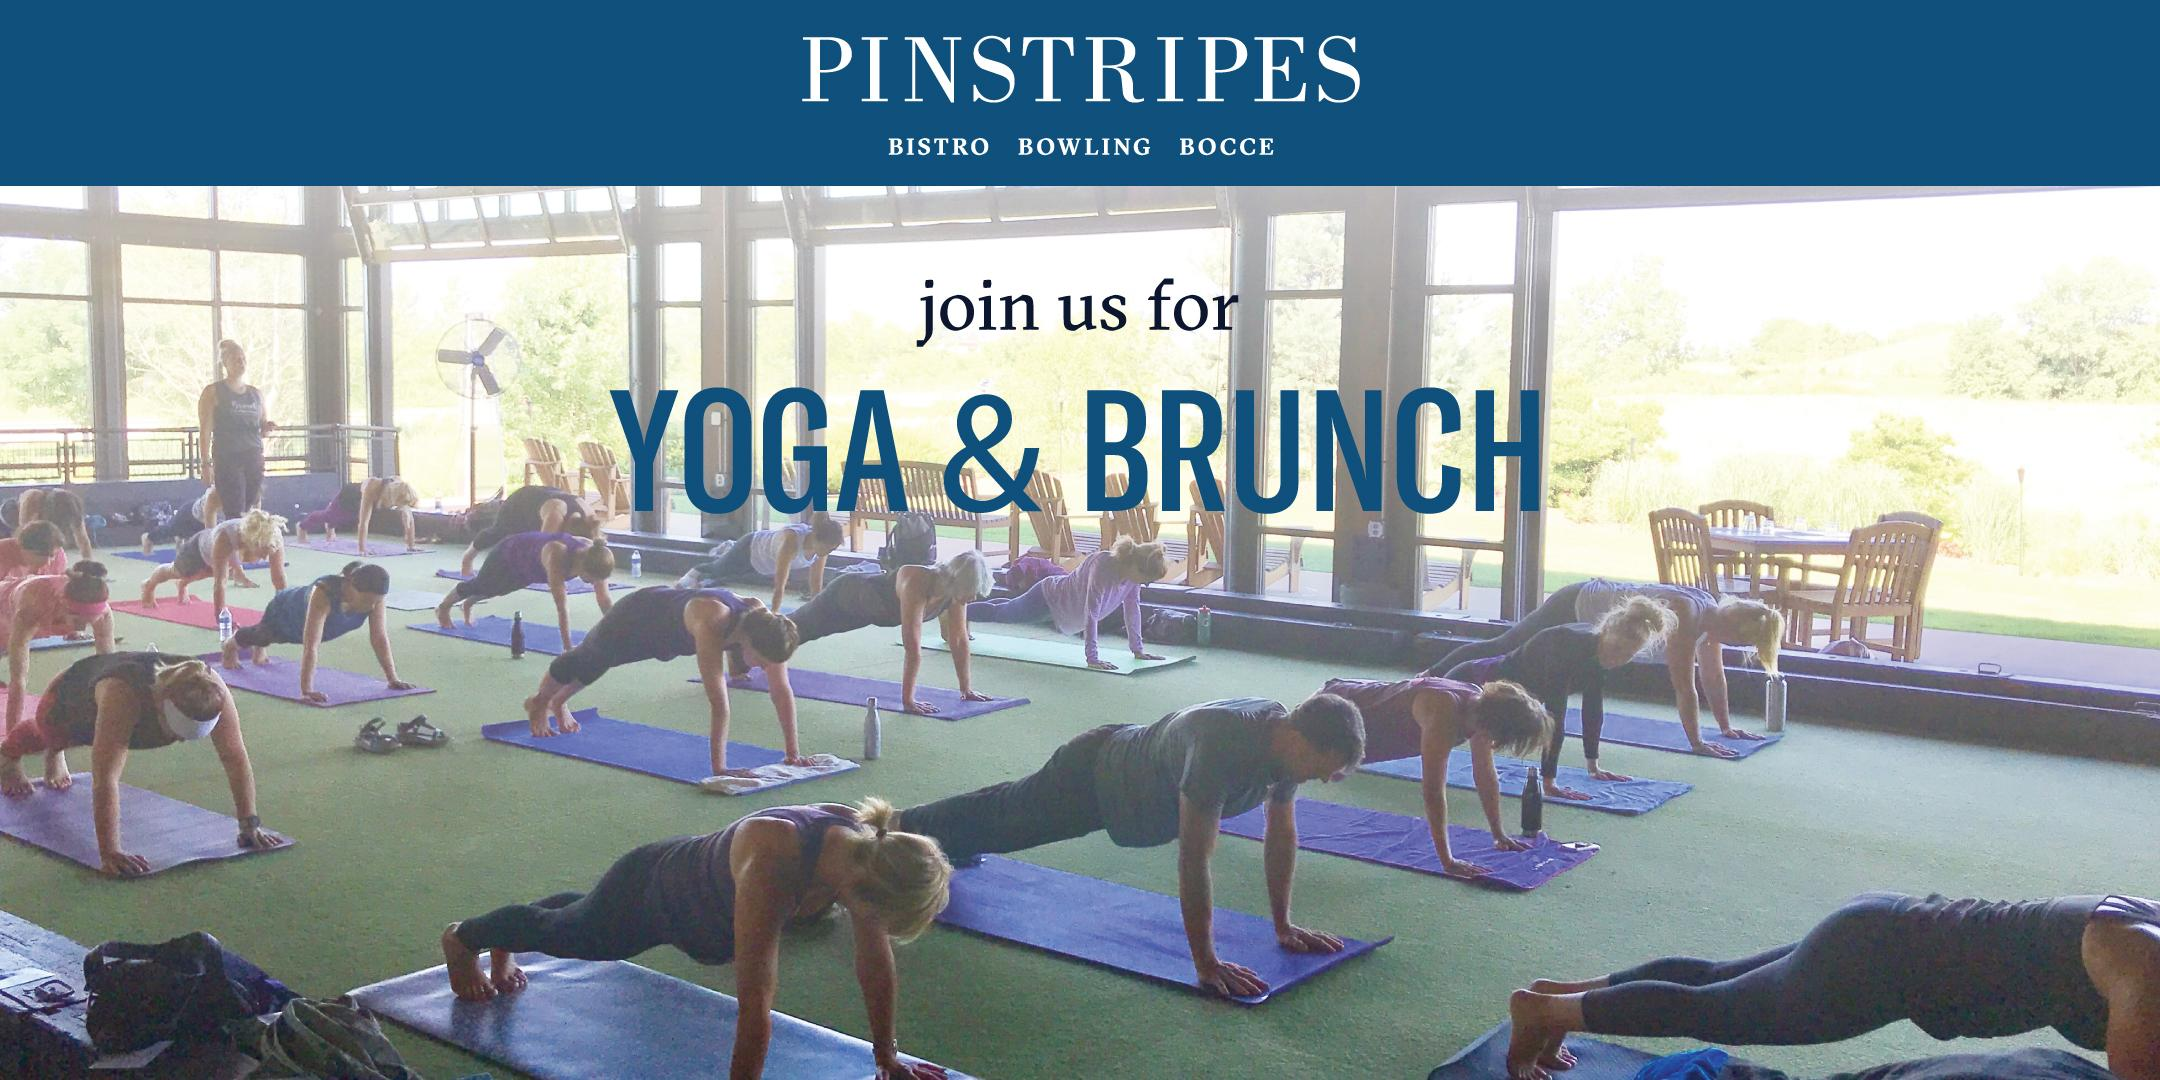 Yoga & Brunch at Pinstripes Chicago